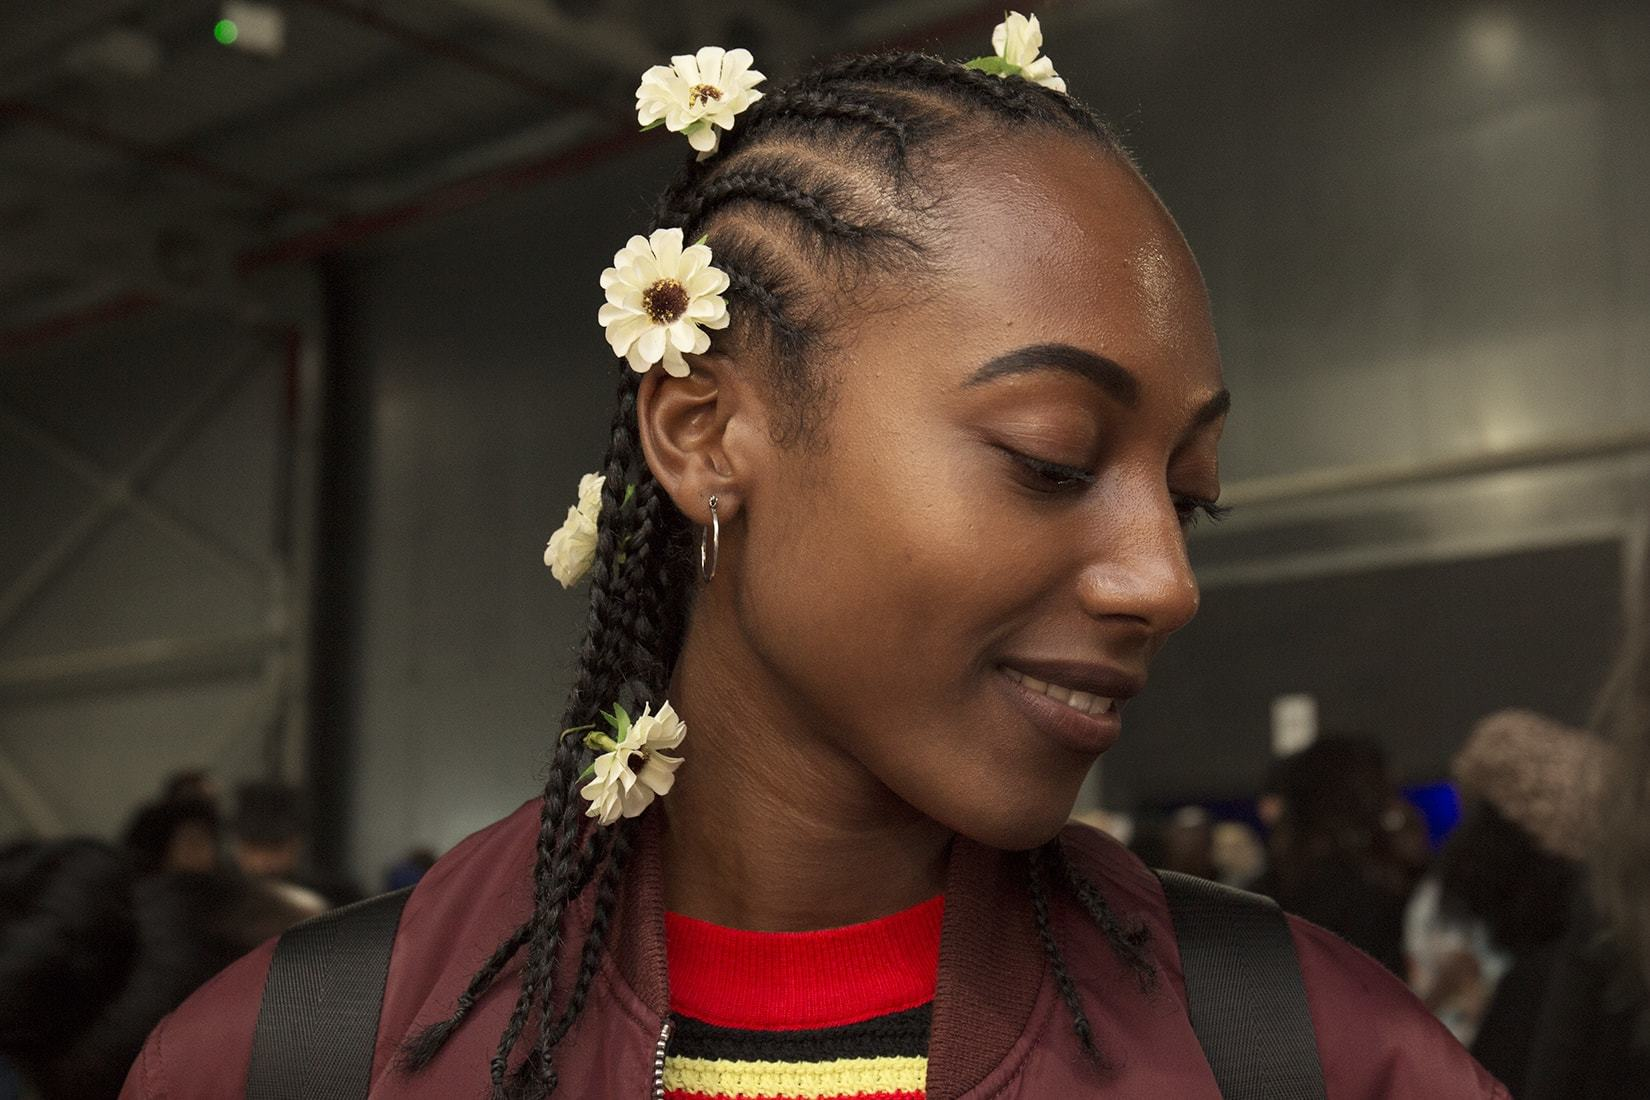 Low manipulation hairstyles: Close up shot of black girl with cornrow hairstyle that has flowers in it, posing at afropunk london festival